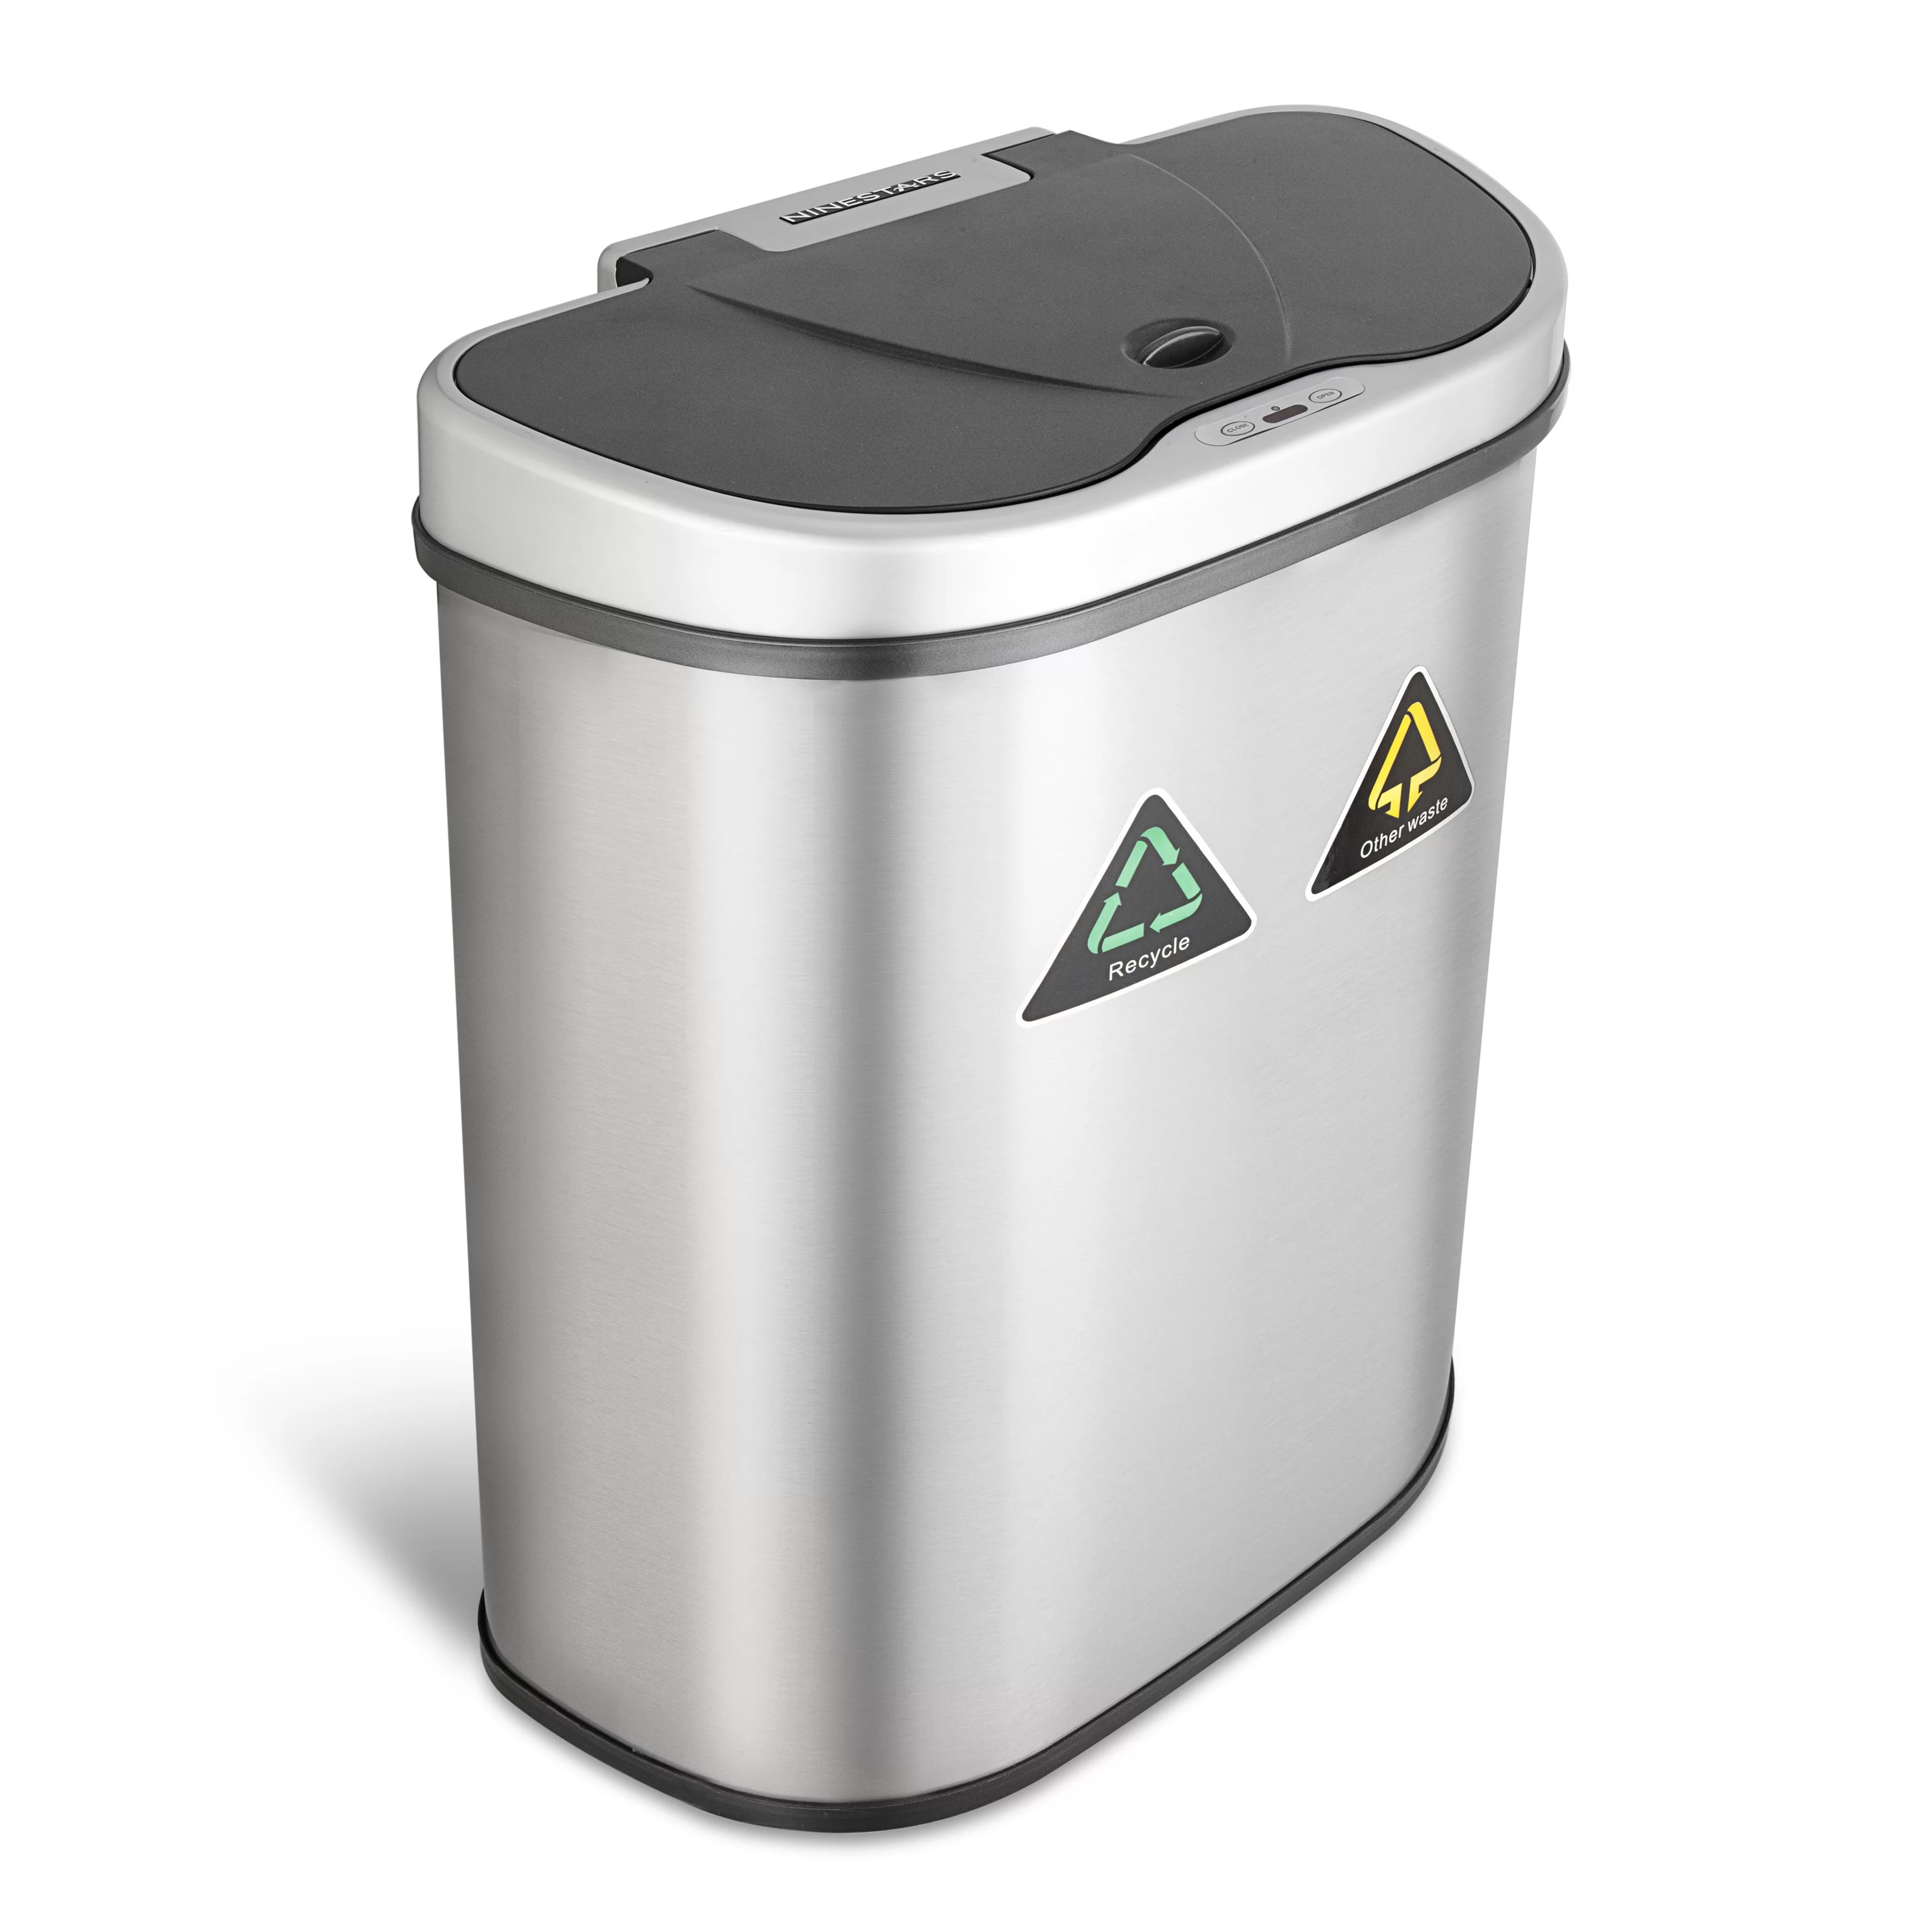 Stainless Steel Recycling Bins Nine Stars Steel 18 5 Gallon Motion Sensor Multi Compartments Trash Recycling Bin